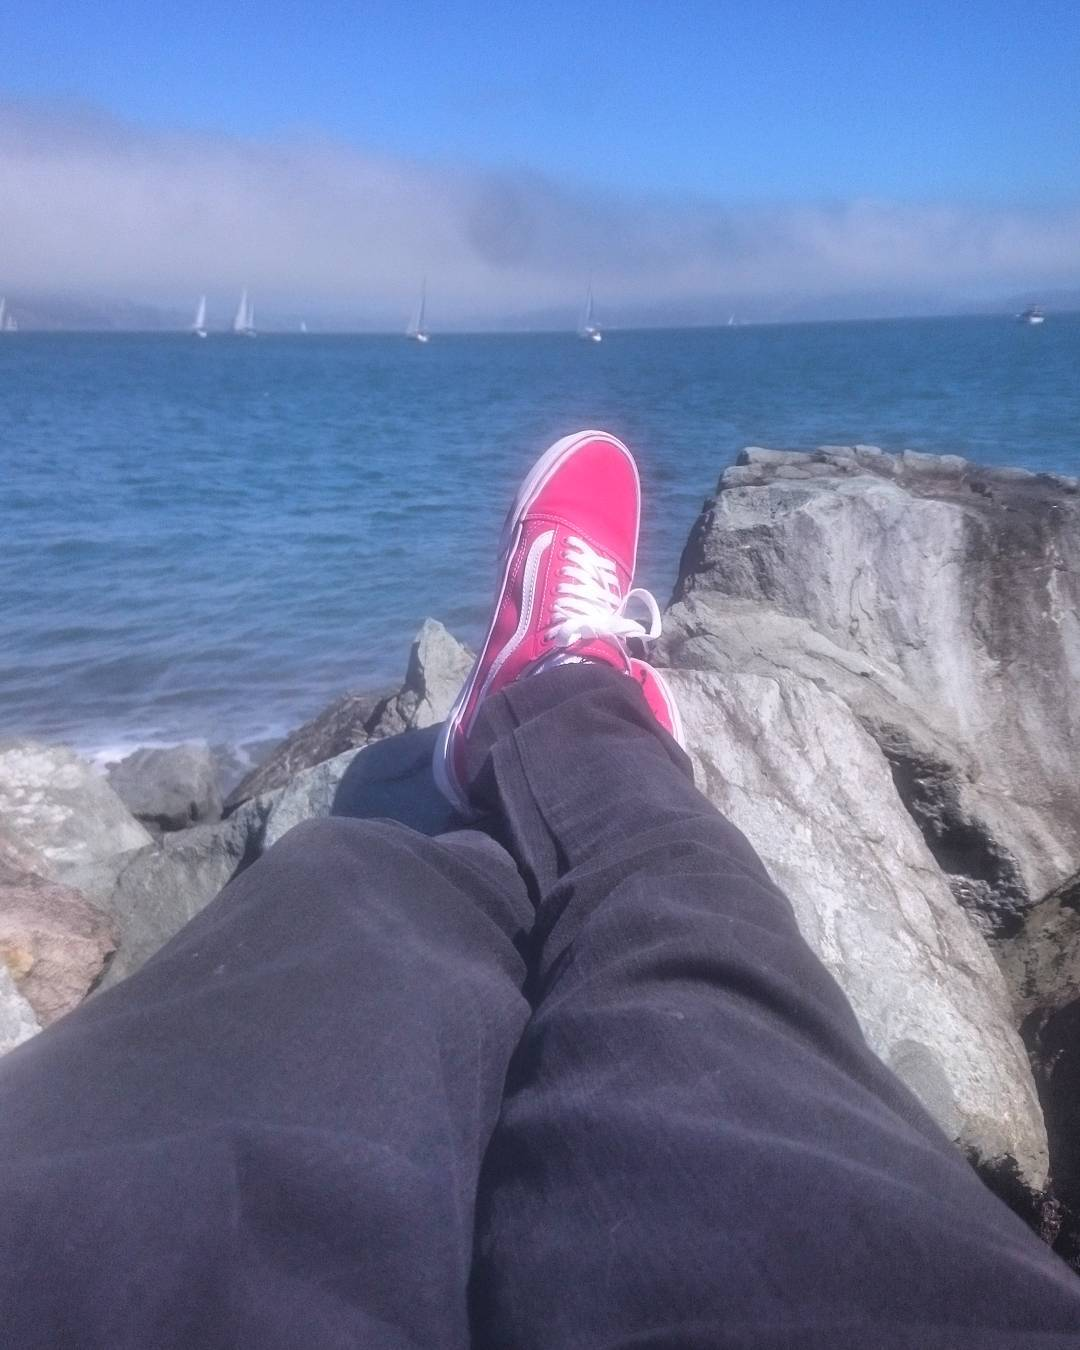 #chilling #SanFrancisco #USA